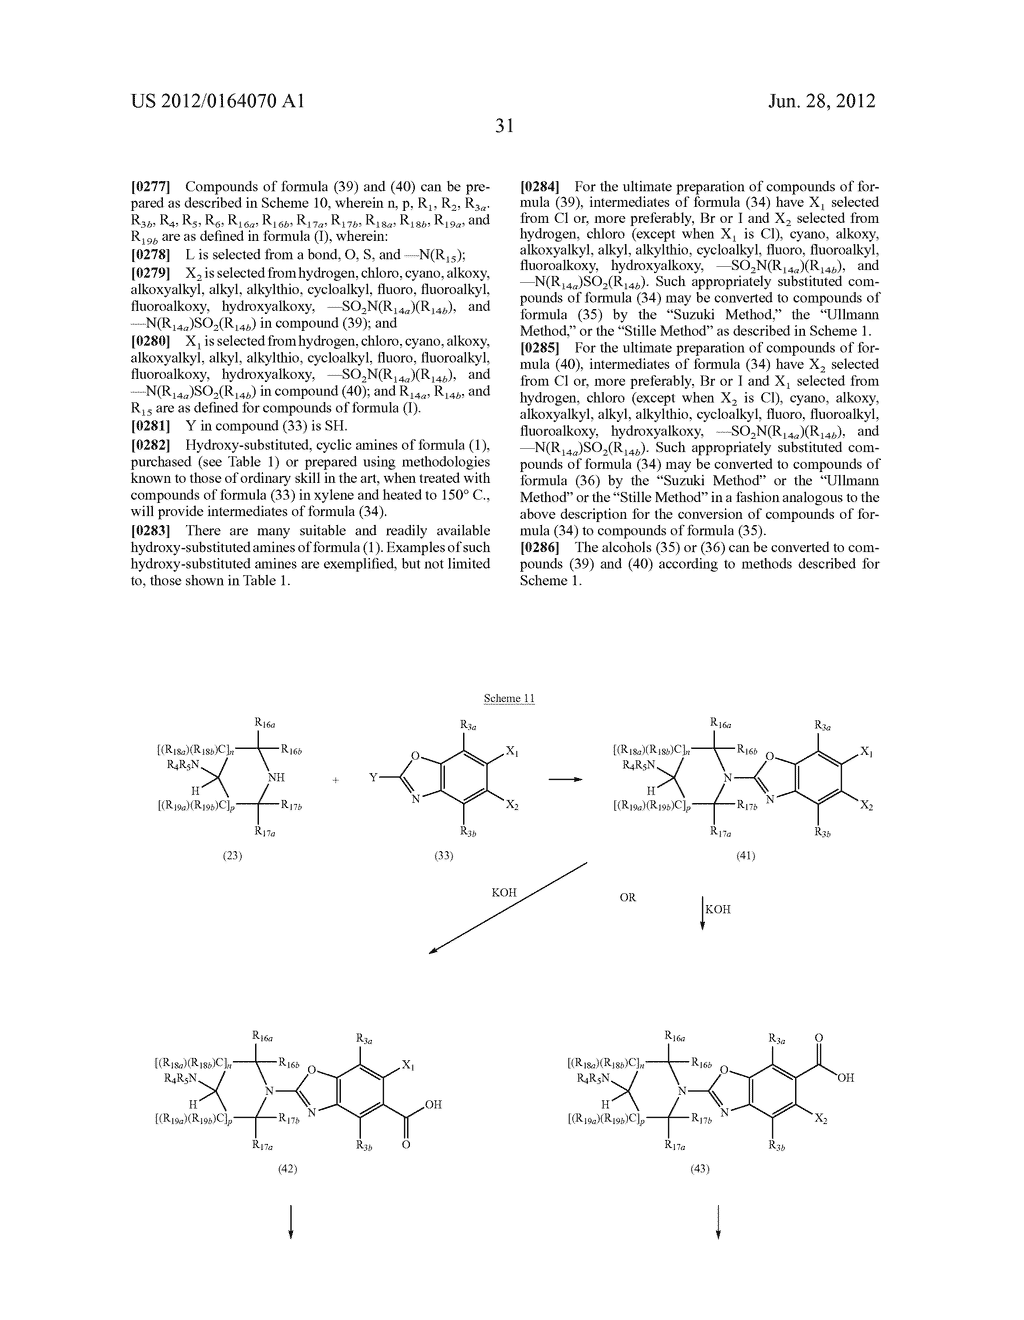 BENZOTHIAZOLE AND BENZOOXAZOLE DERIVATIVES AND METHODS OF USE - diagram, schematic, and image 32